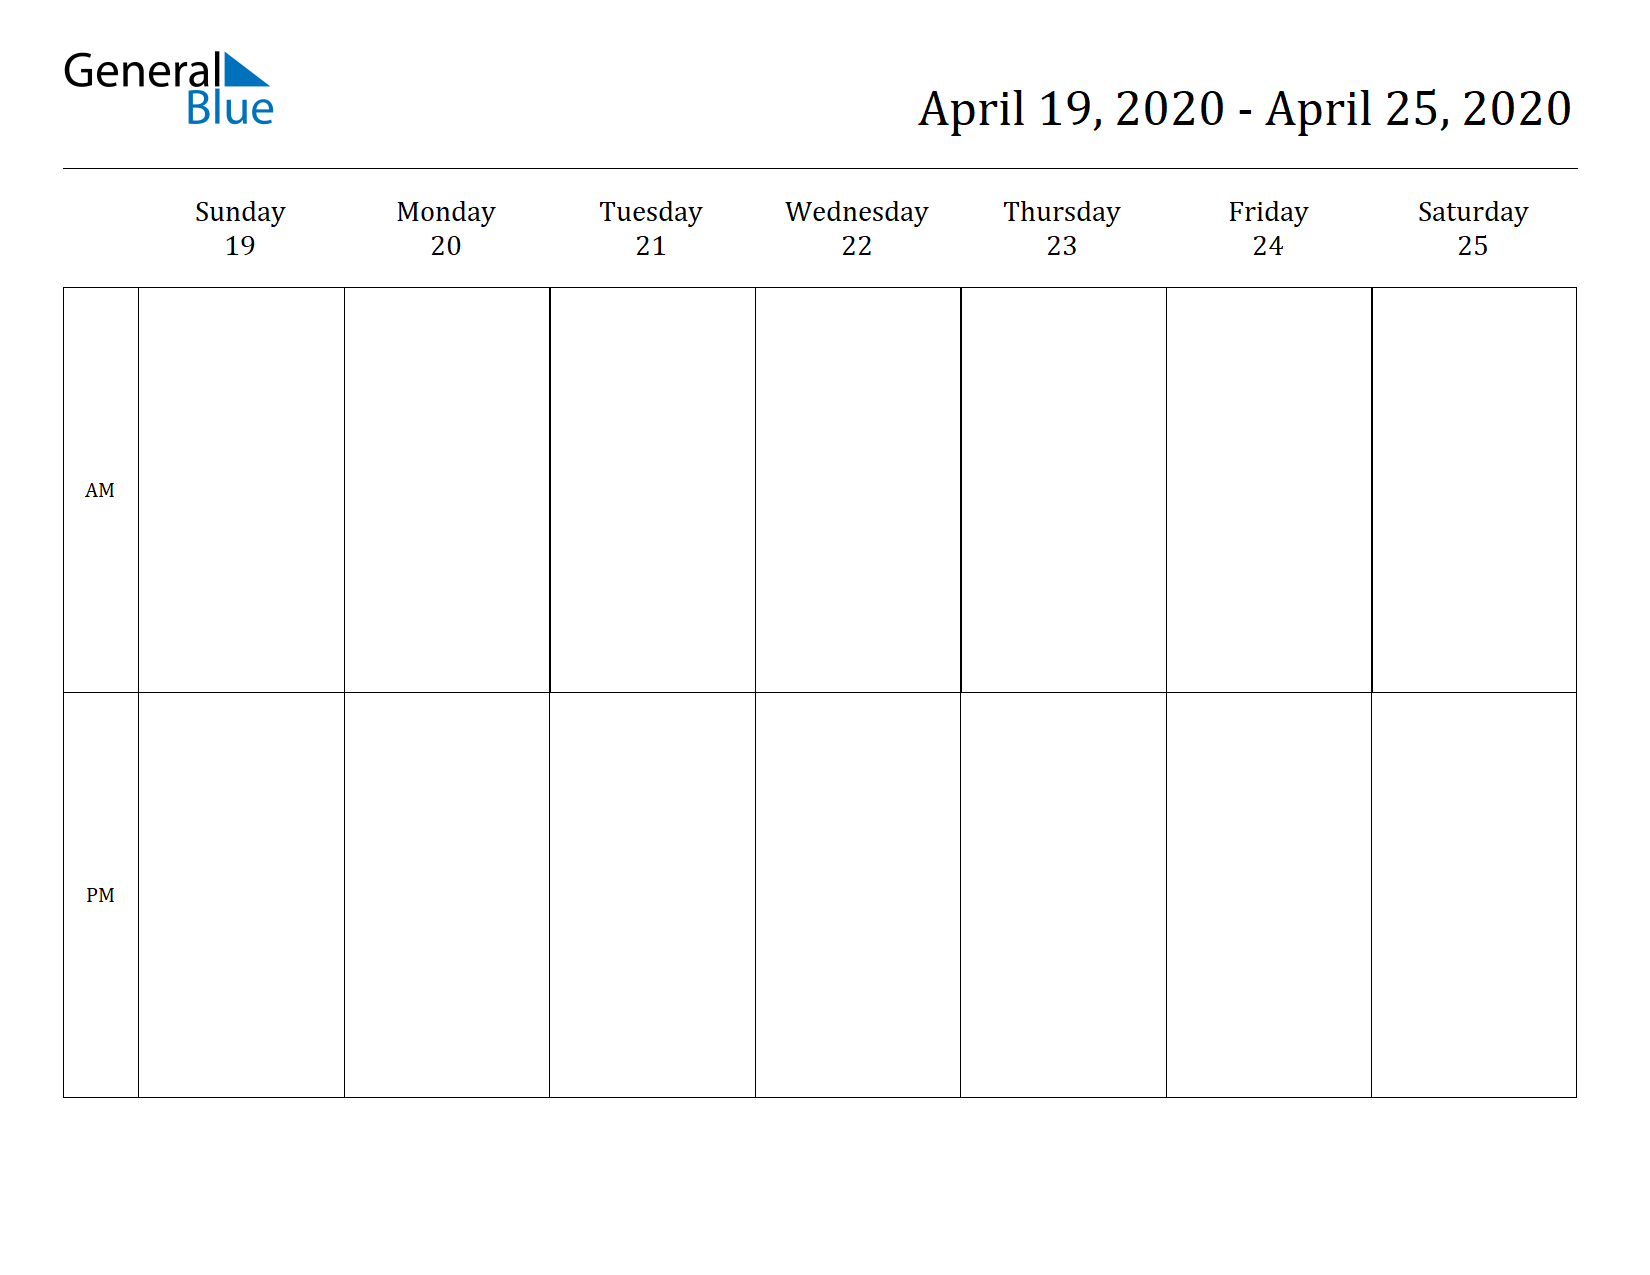 Weekly Calendar for Apr 19, 2020 to Apr 25, 2020